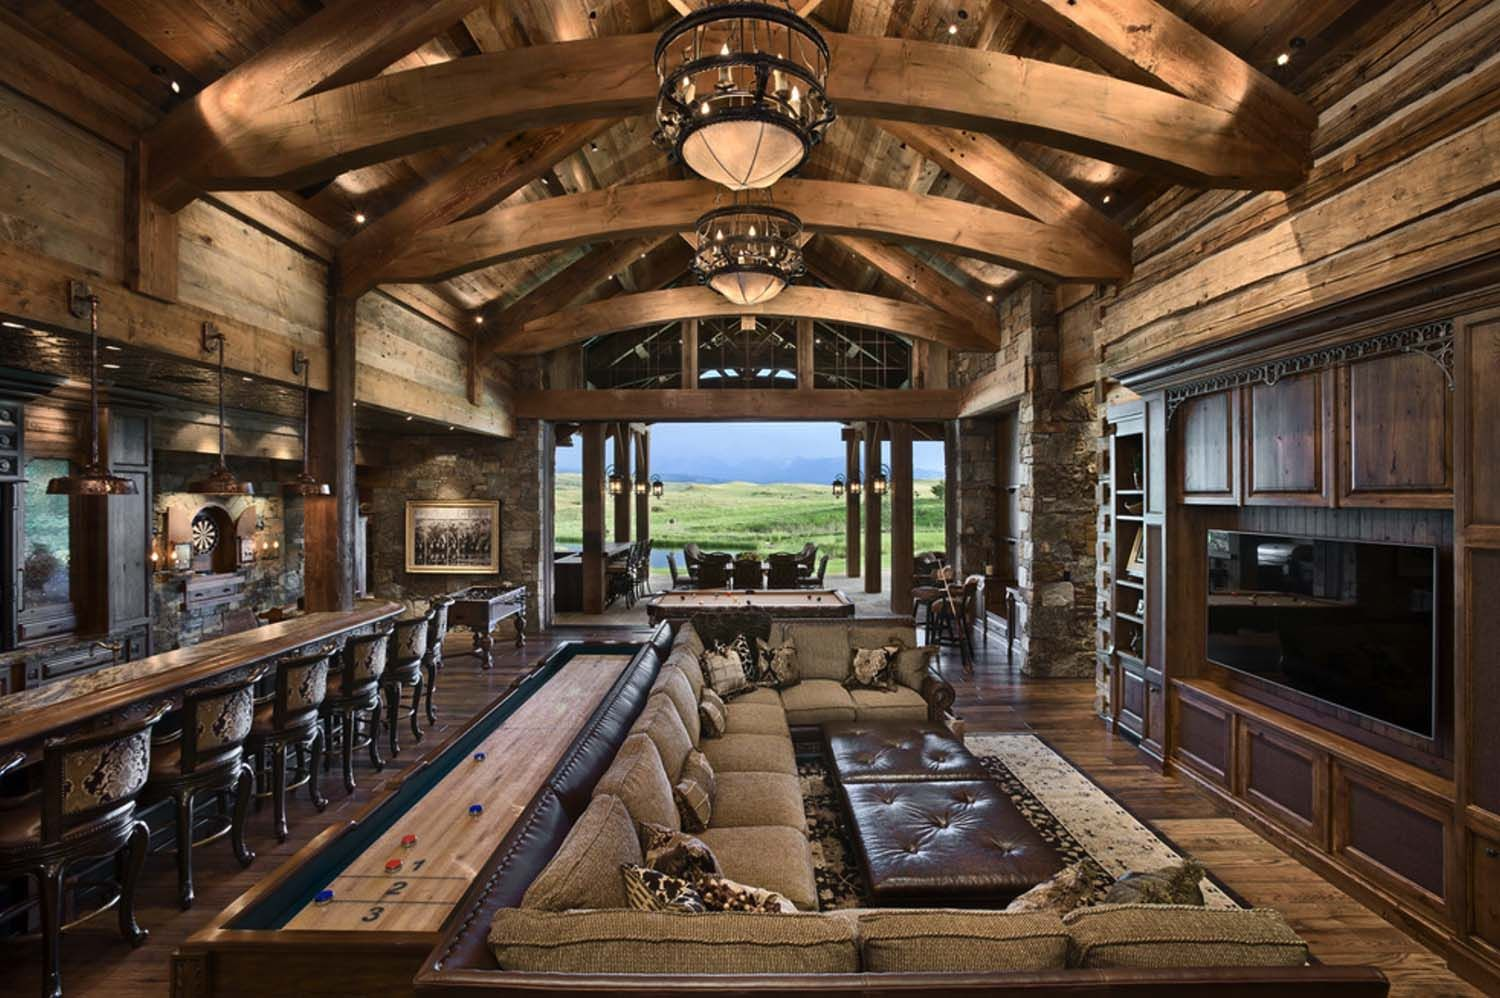 Rustic yet refined mountain home surrounded by Montana's ... on locati house plans, montana log home plans, montana log cabins,